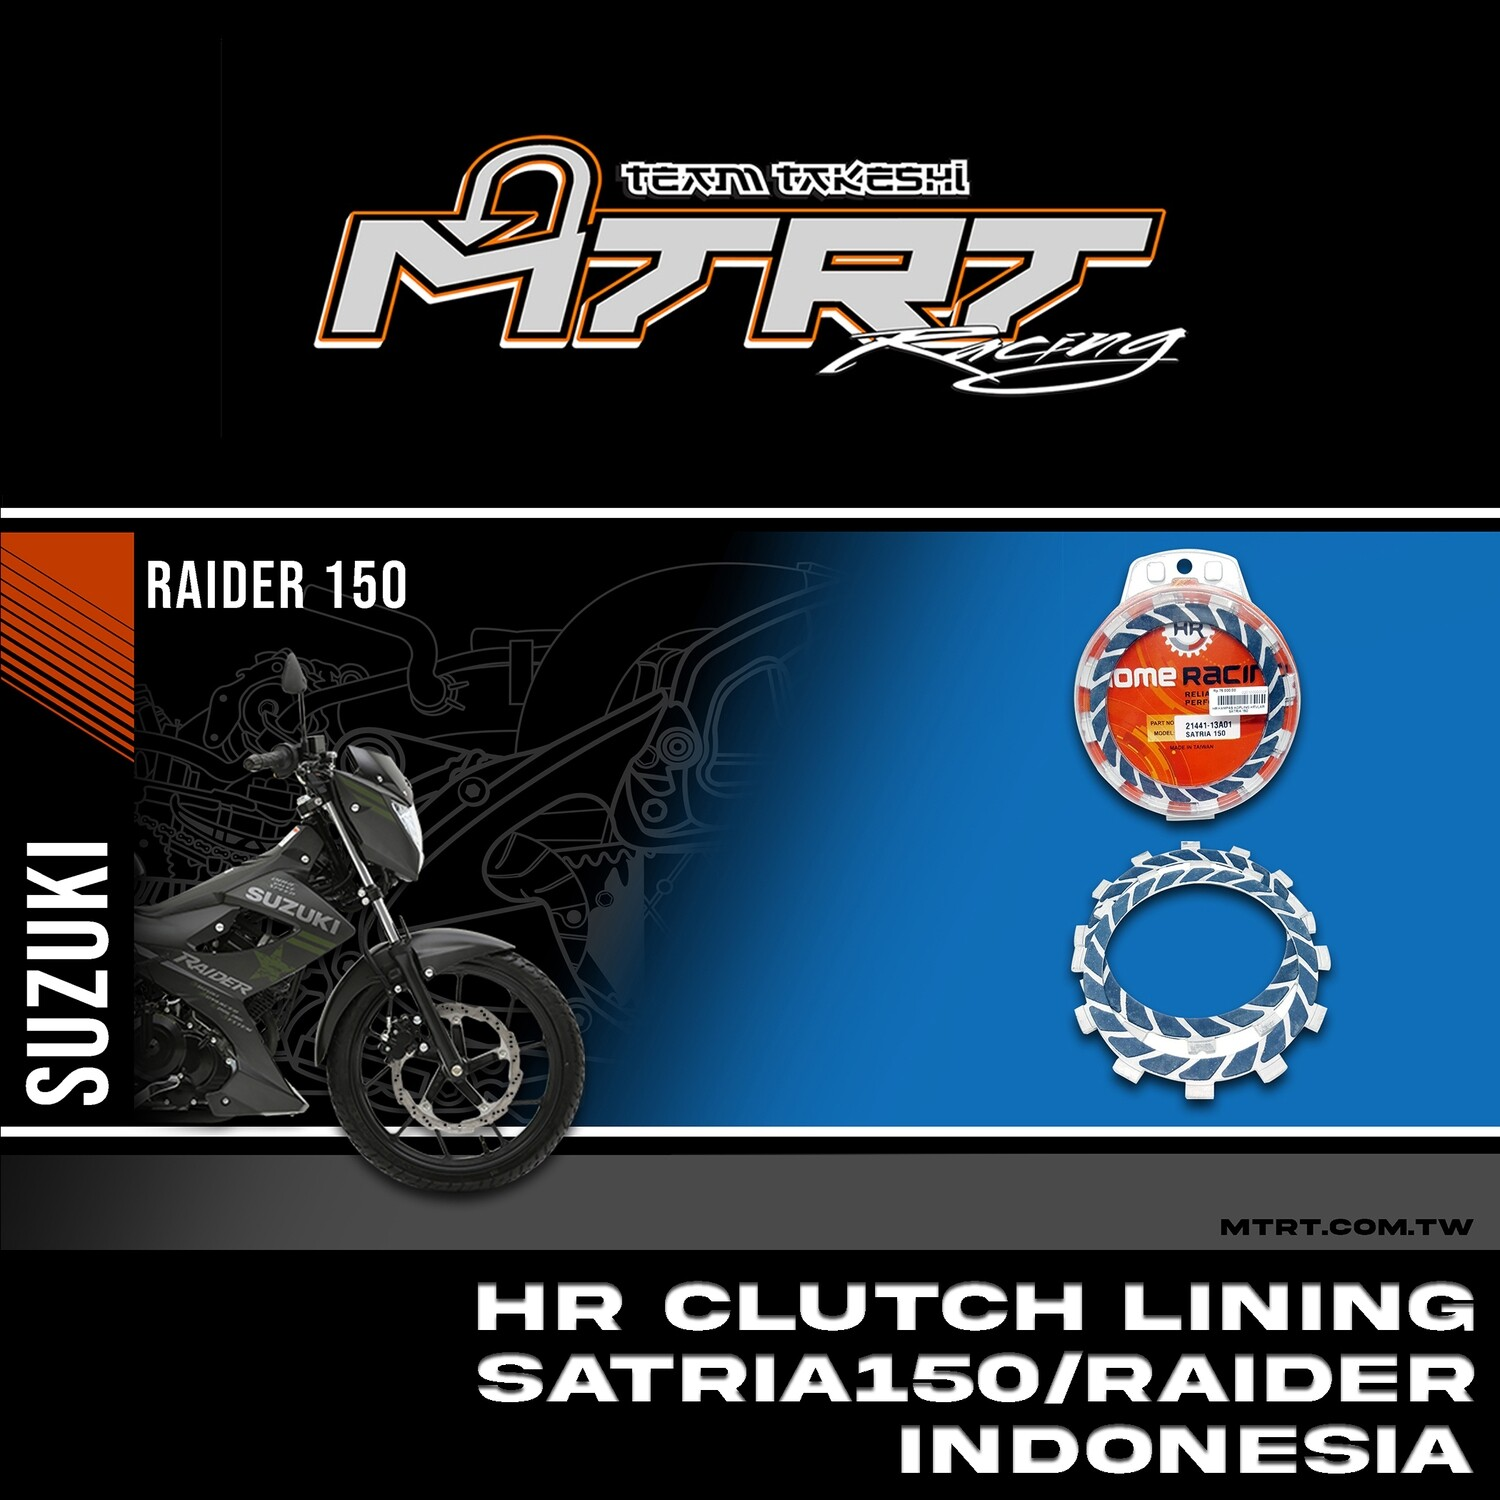 HR CLUTCH LINING SATRIA 150/RAIDER INDONESIA